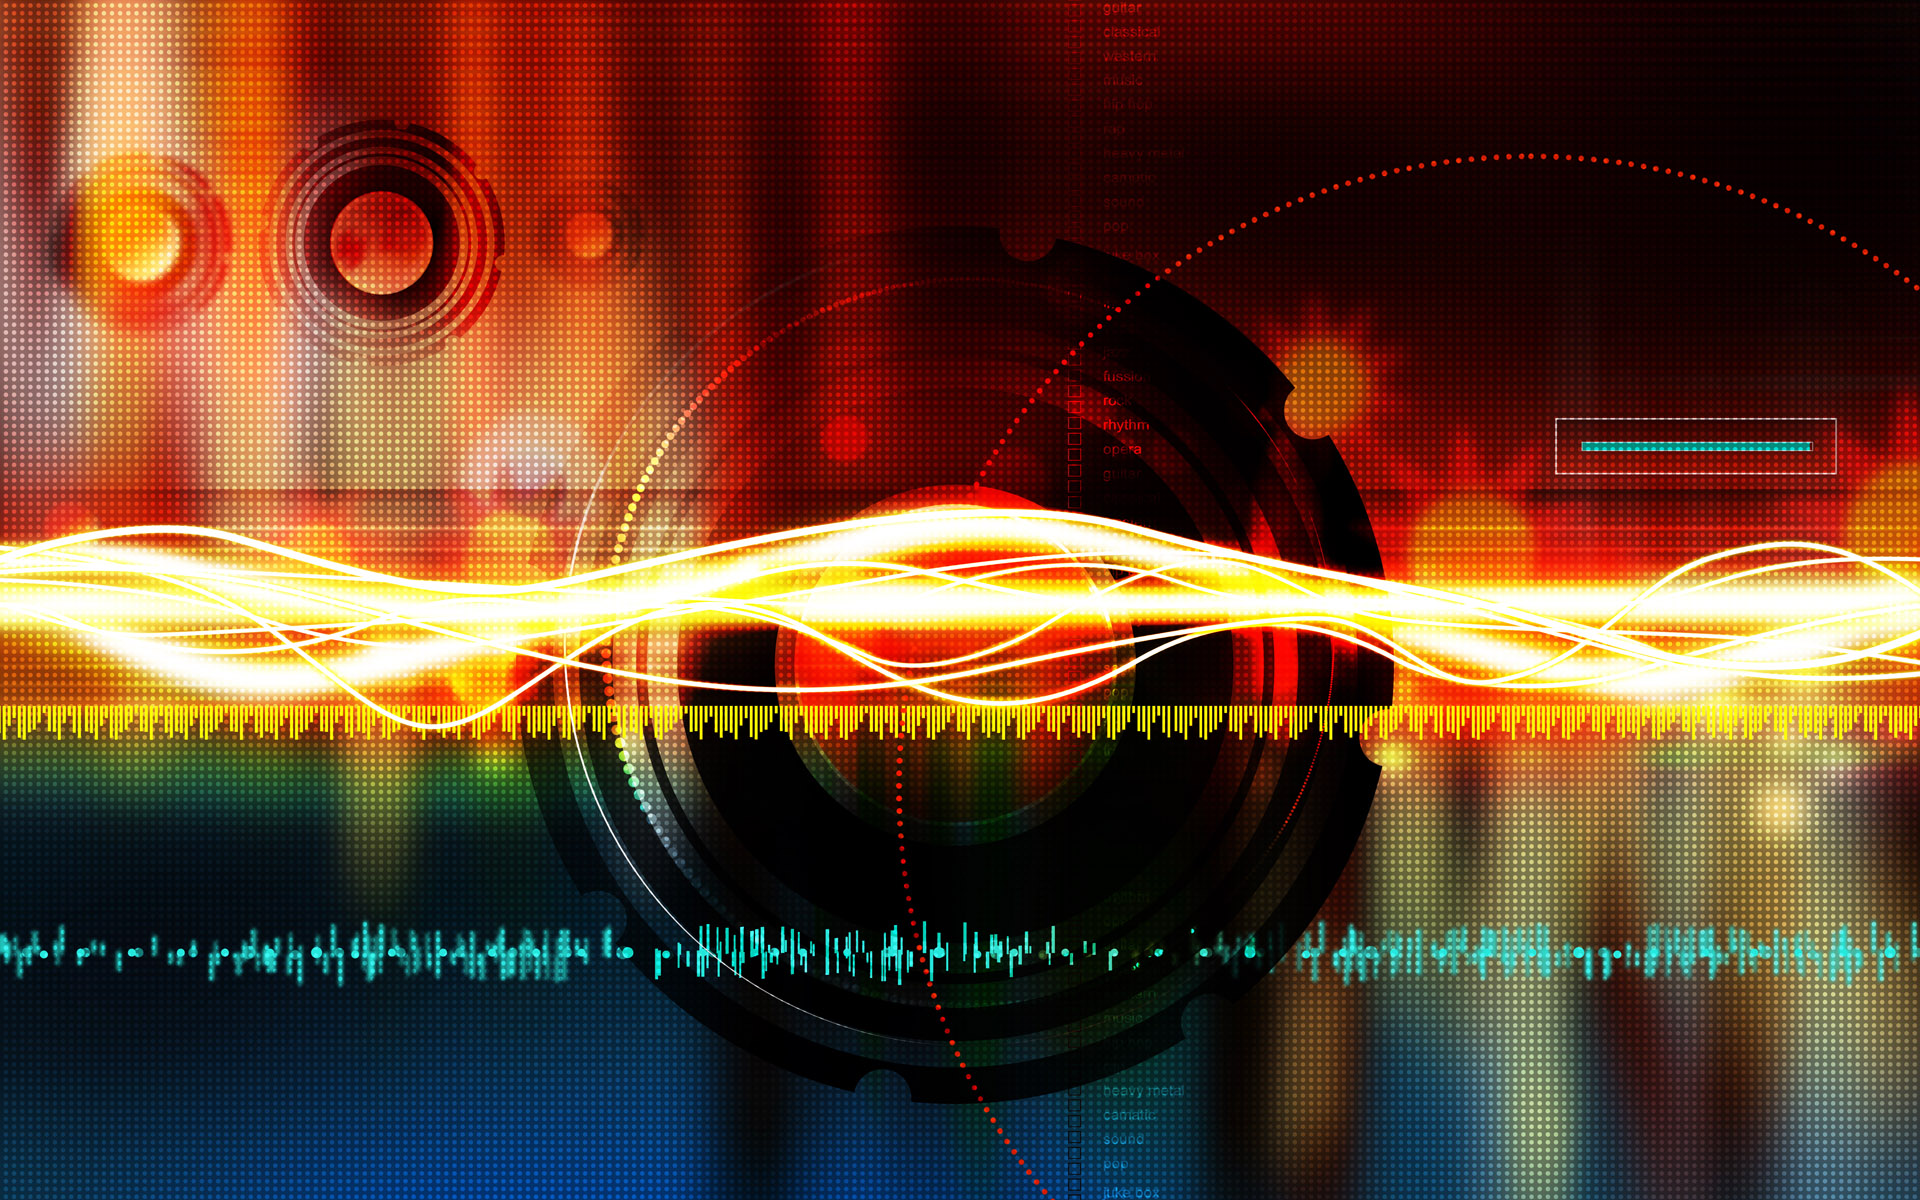 Colorful background of high-definition 21291